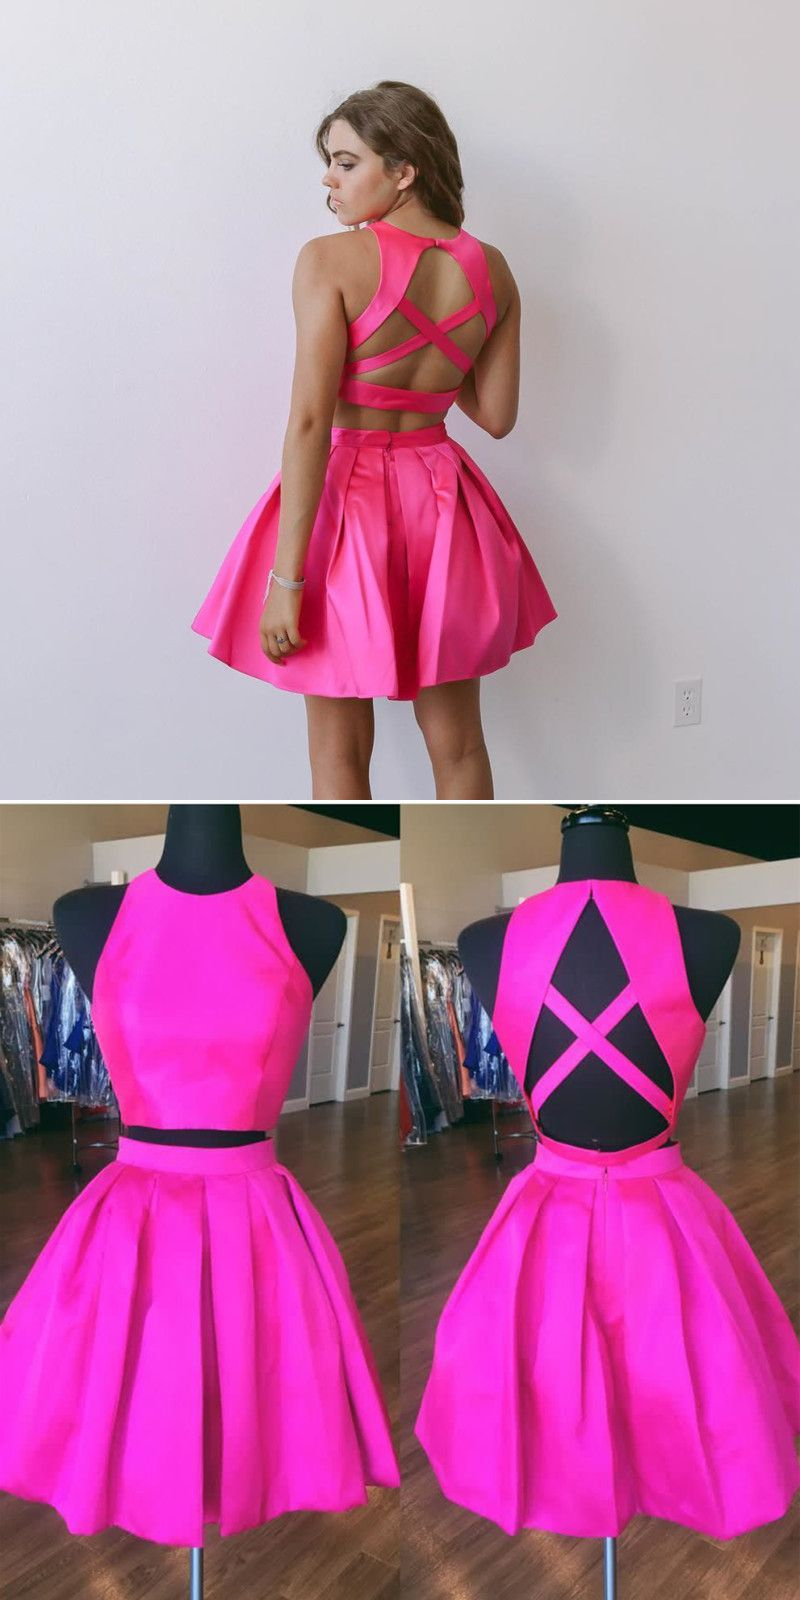 5ad8ef77967ff two piece short pink homecoming dress with criss back details, 2018  princess short homecoming dresses party dresses